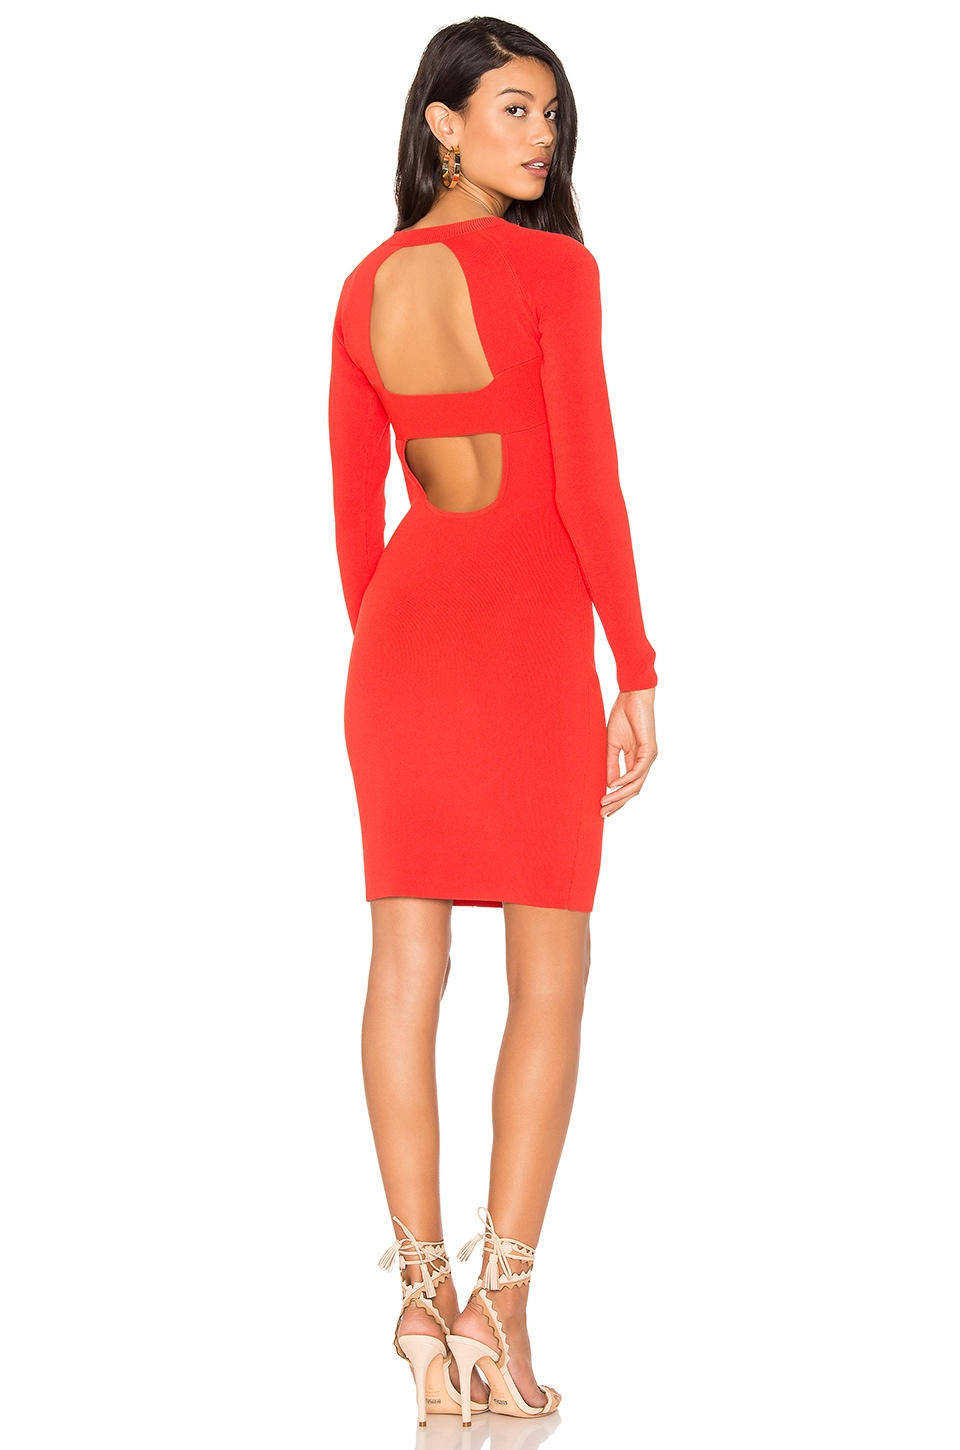 Banded Dress by KENDALL + KYLIE